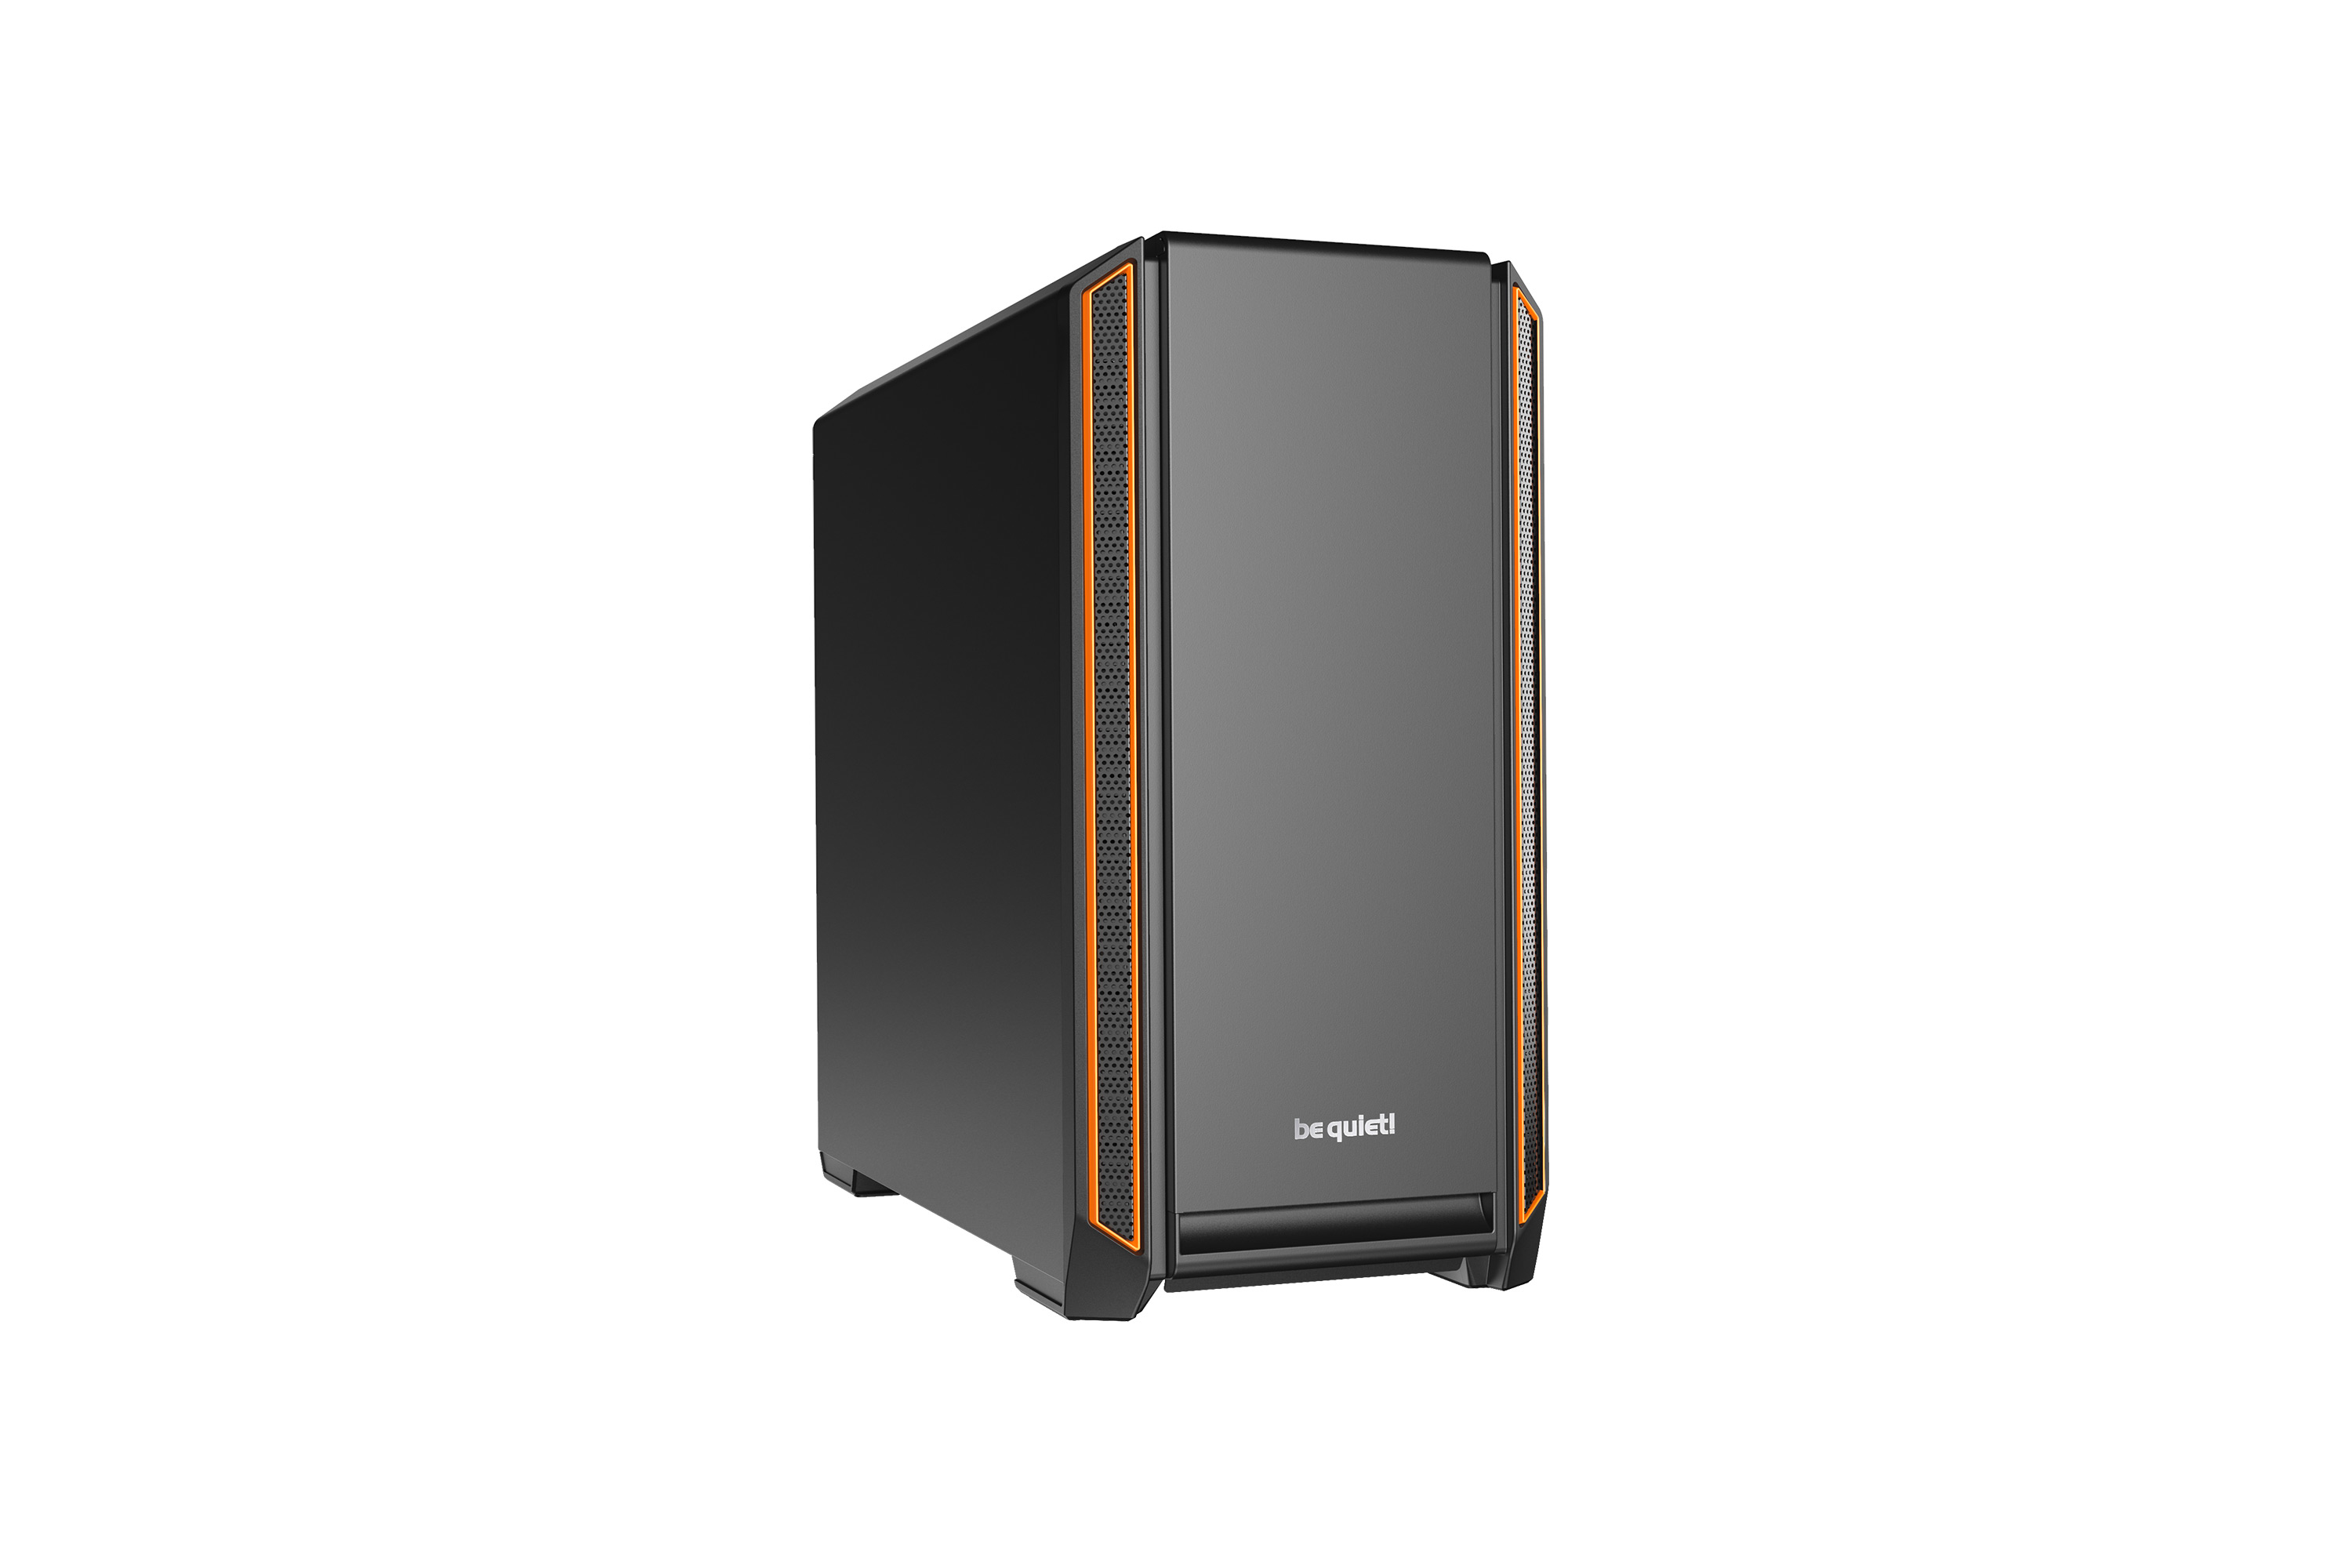 be quiet! Silent Base 601 Orange, 532 x 230 x 513, IO-panel 2x USB 3.0, 1x USB 2.0, HD Audio, 3 (7) x 3,5, 6 (14) x 2,5, inc 2x 140 mm Pure Wings 2, dual air channel cooling, 3-in-1 airintake sidepanel